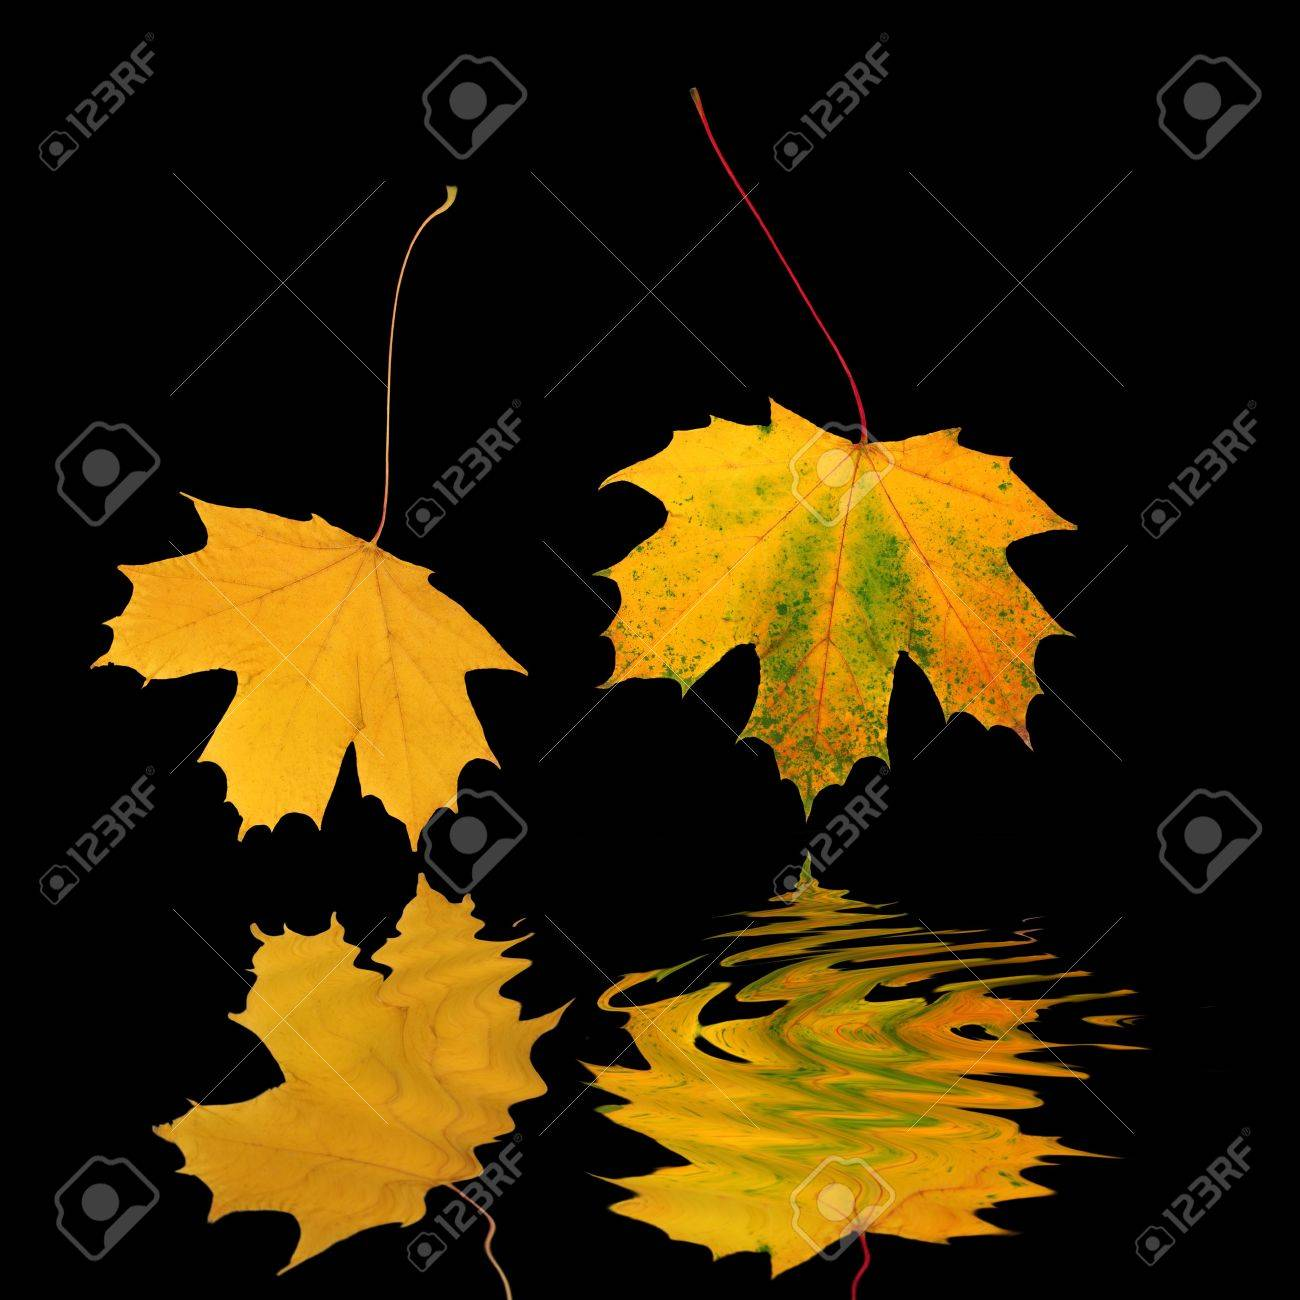 Abstract of two golden maple leaves in autumn, reflected over water and set against a black background. Stock Photo - 2585581